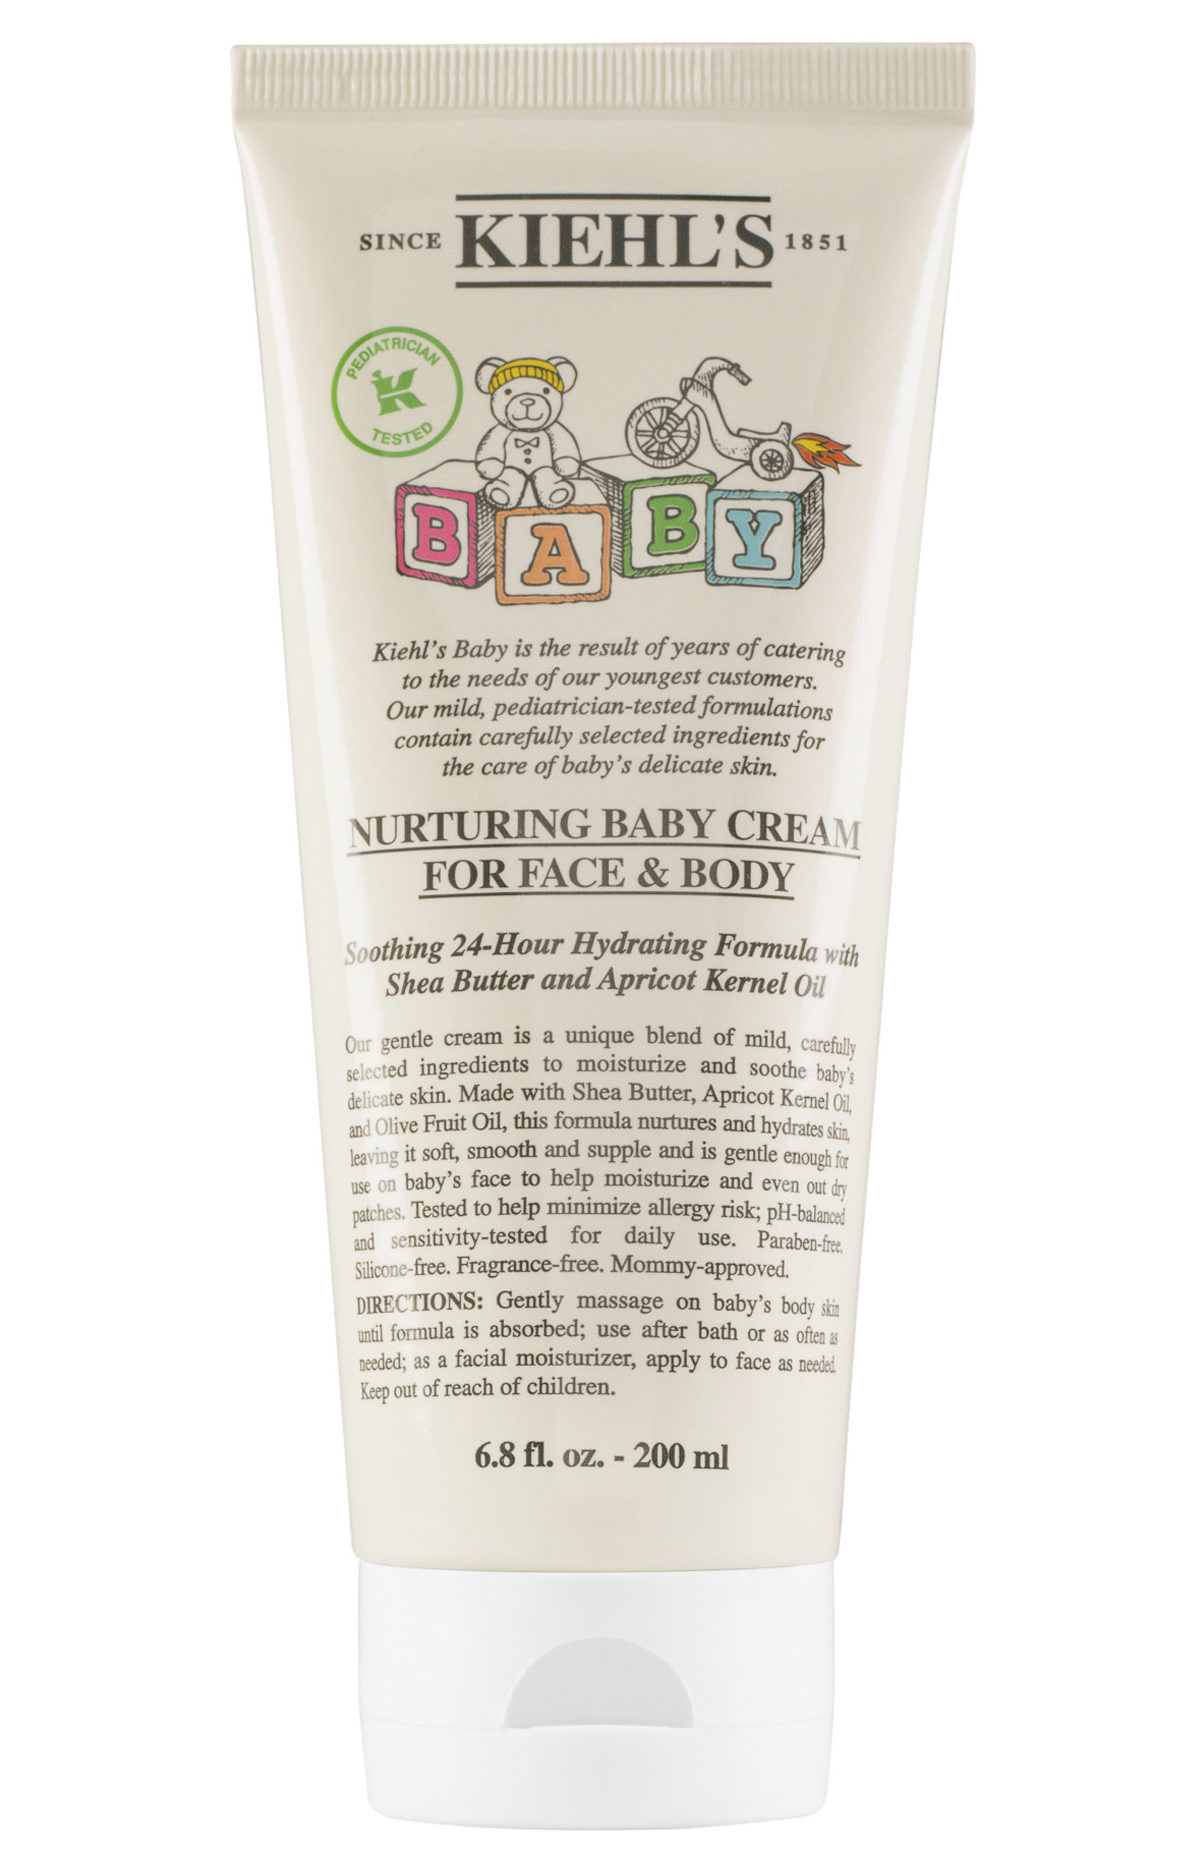 Nurturing Baby Cream for Face & Body